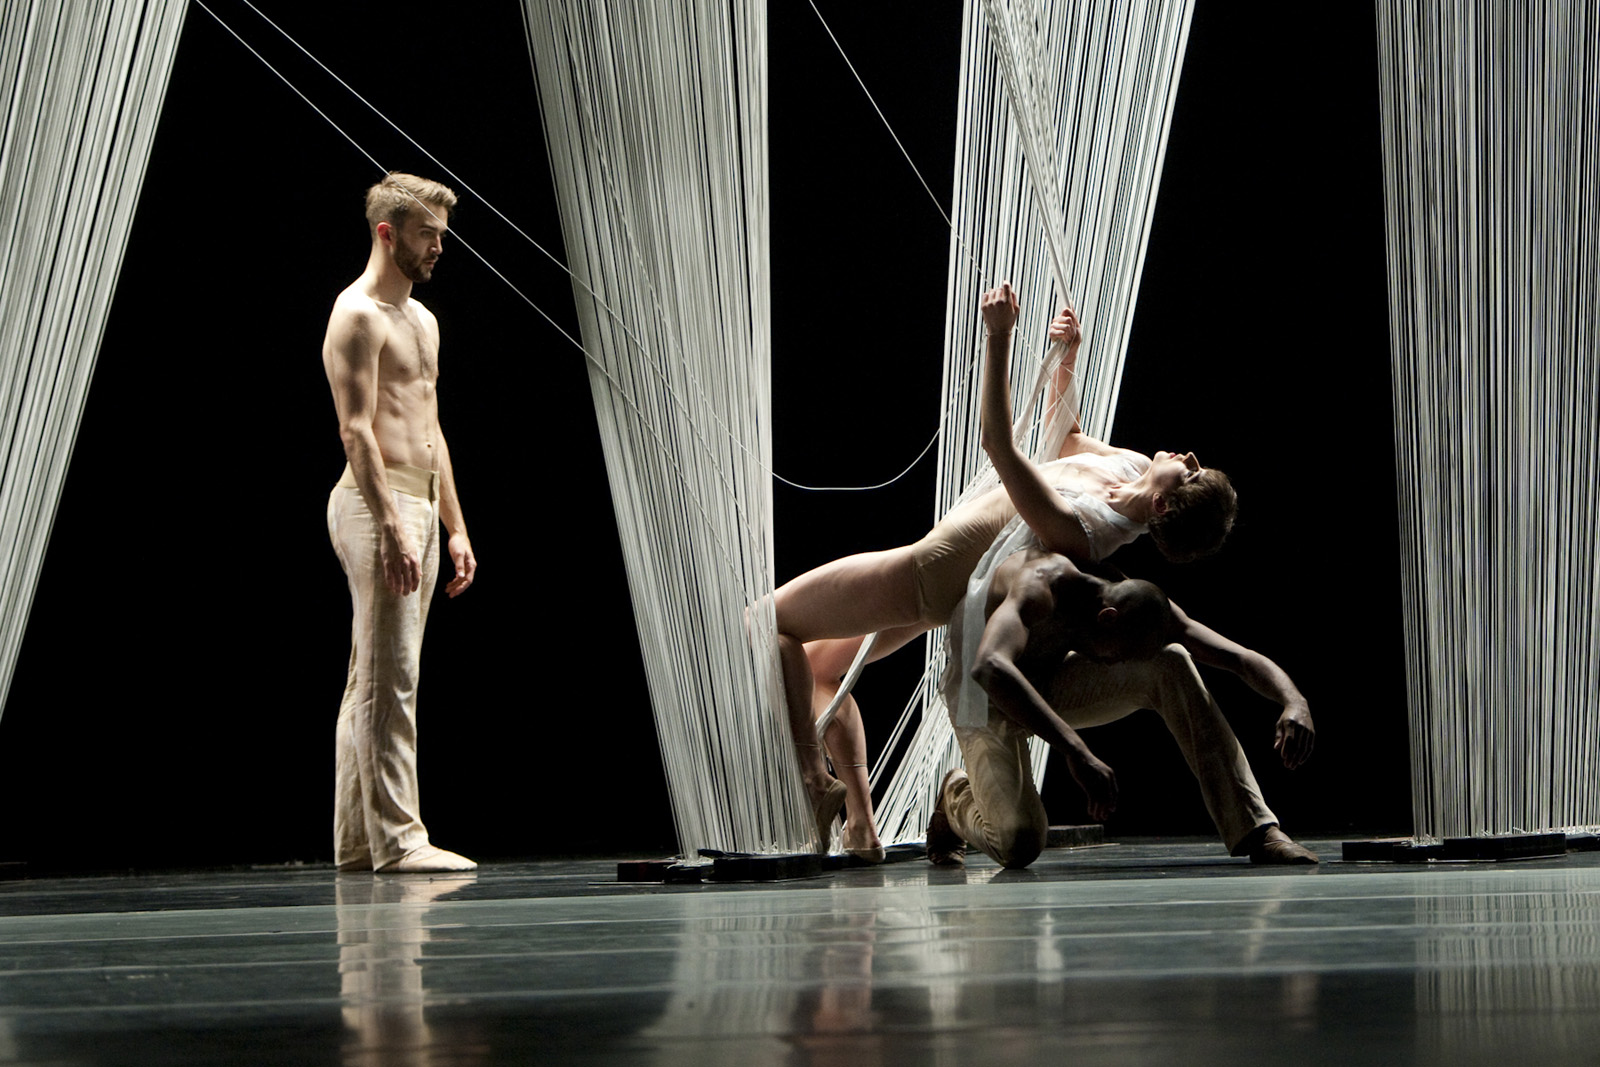 Haas designed two different sets for the two acts of the ballet. The first was a long curtain of shimmering, gossamer elastic cords. Almost immediately the dancers created three triangular gaps in the curtain, setting up one of the central activities of t